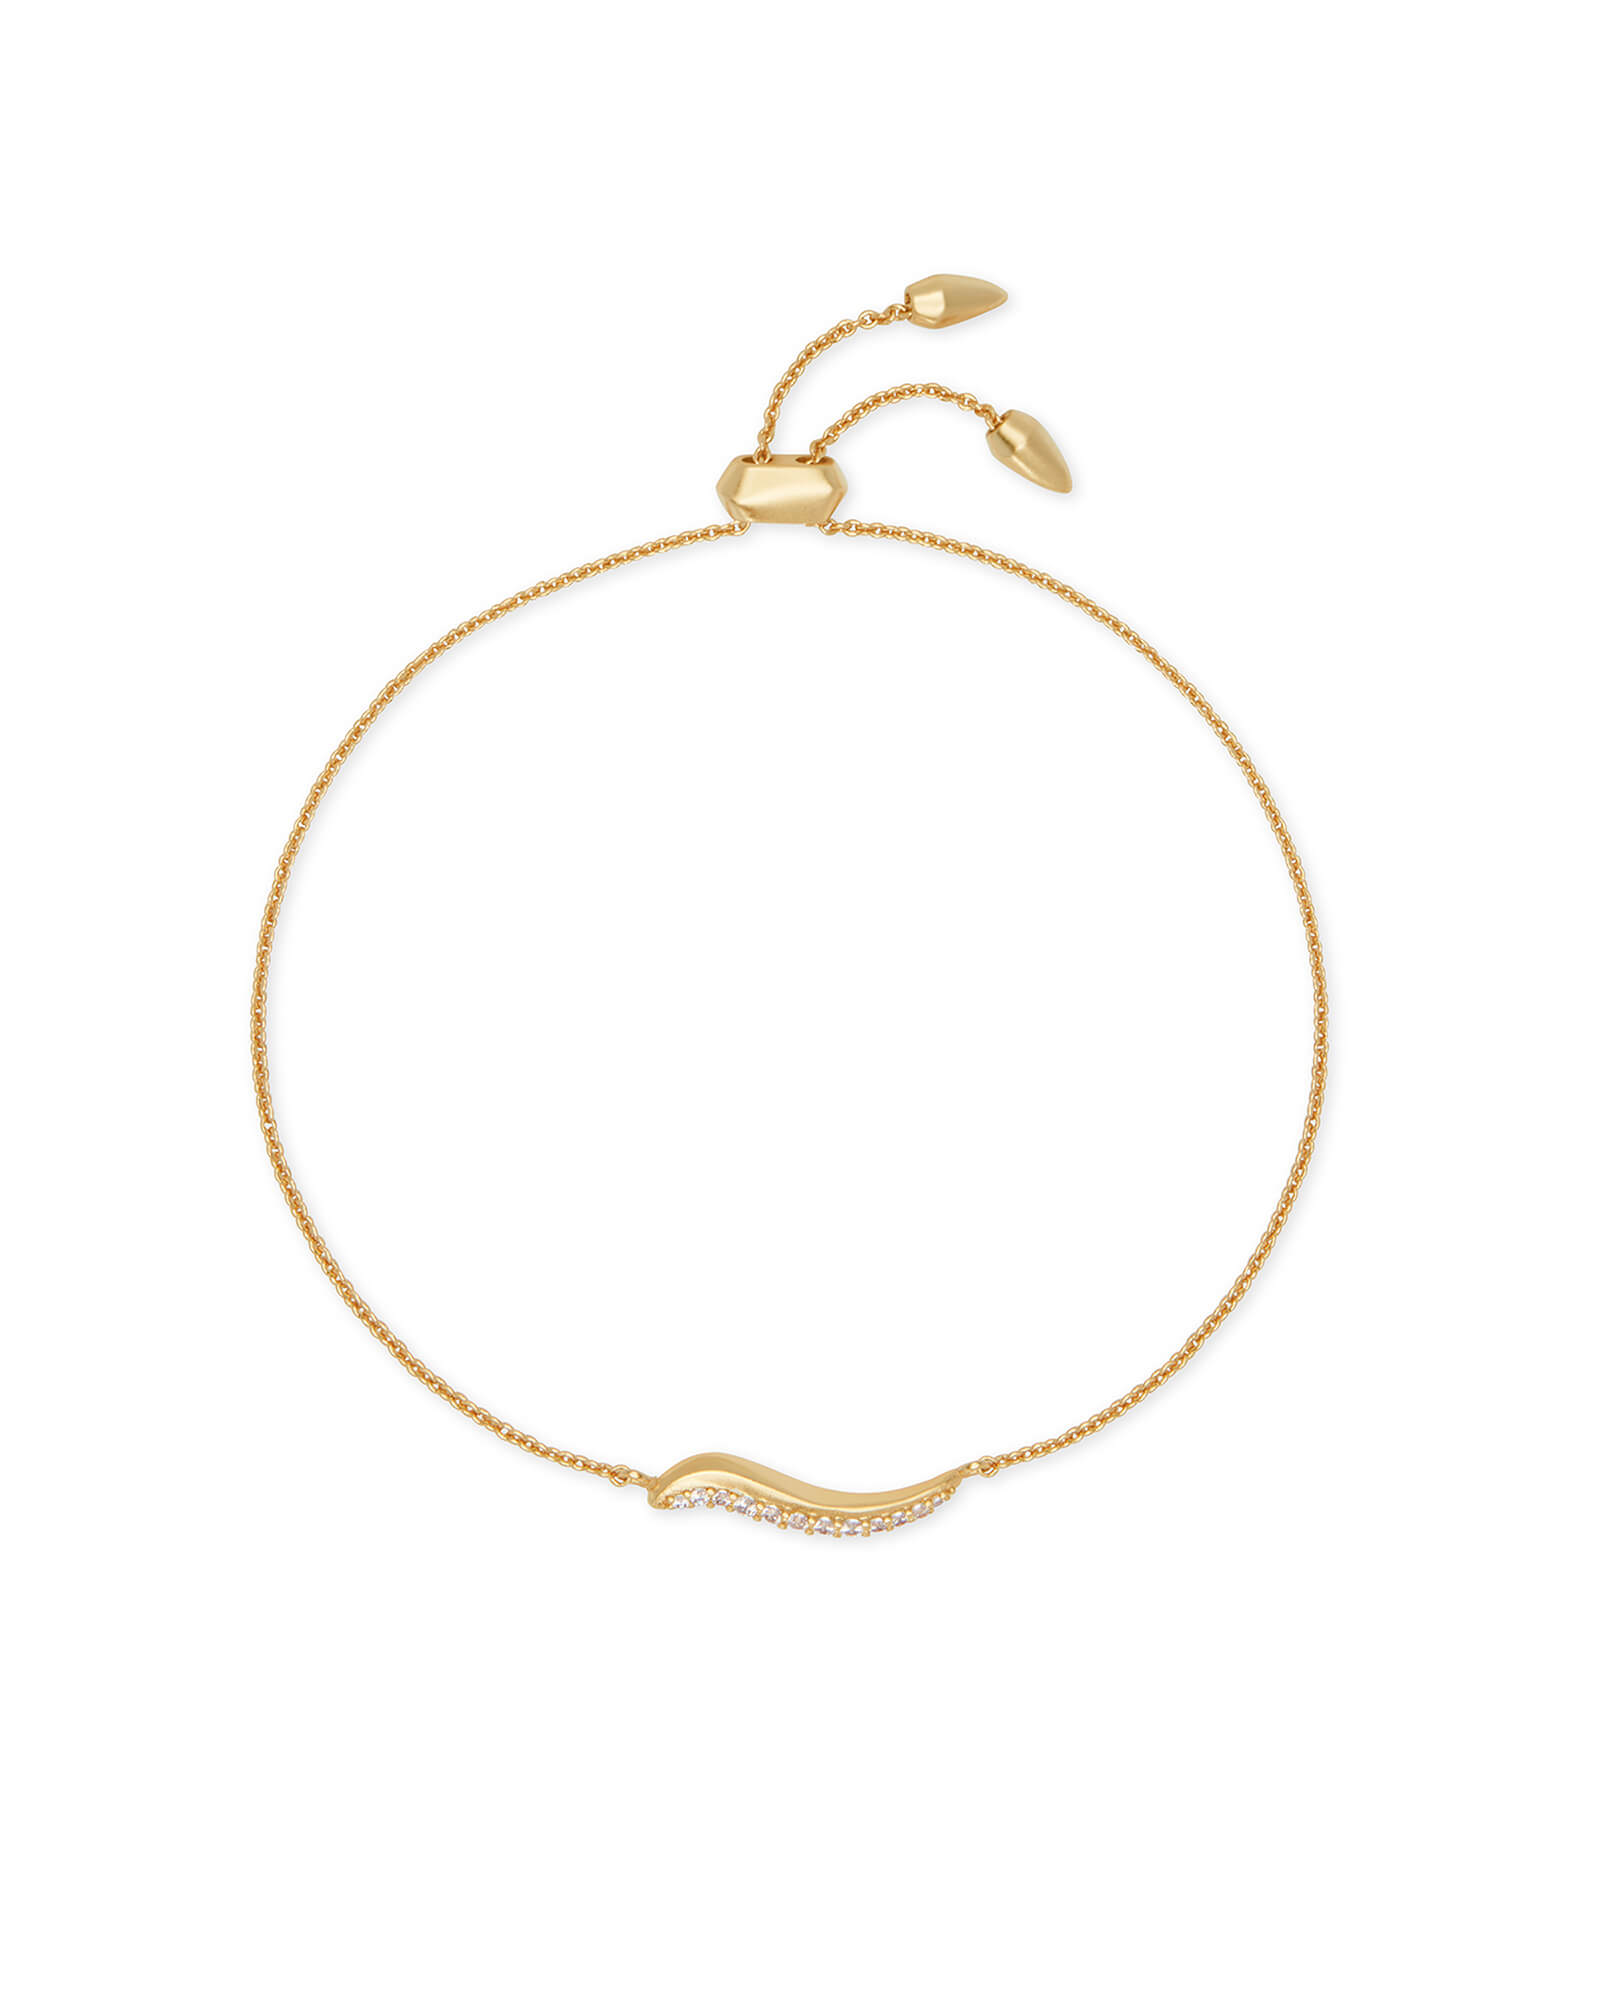 Jemmina Chain Bracelet in Gold